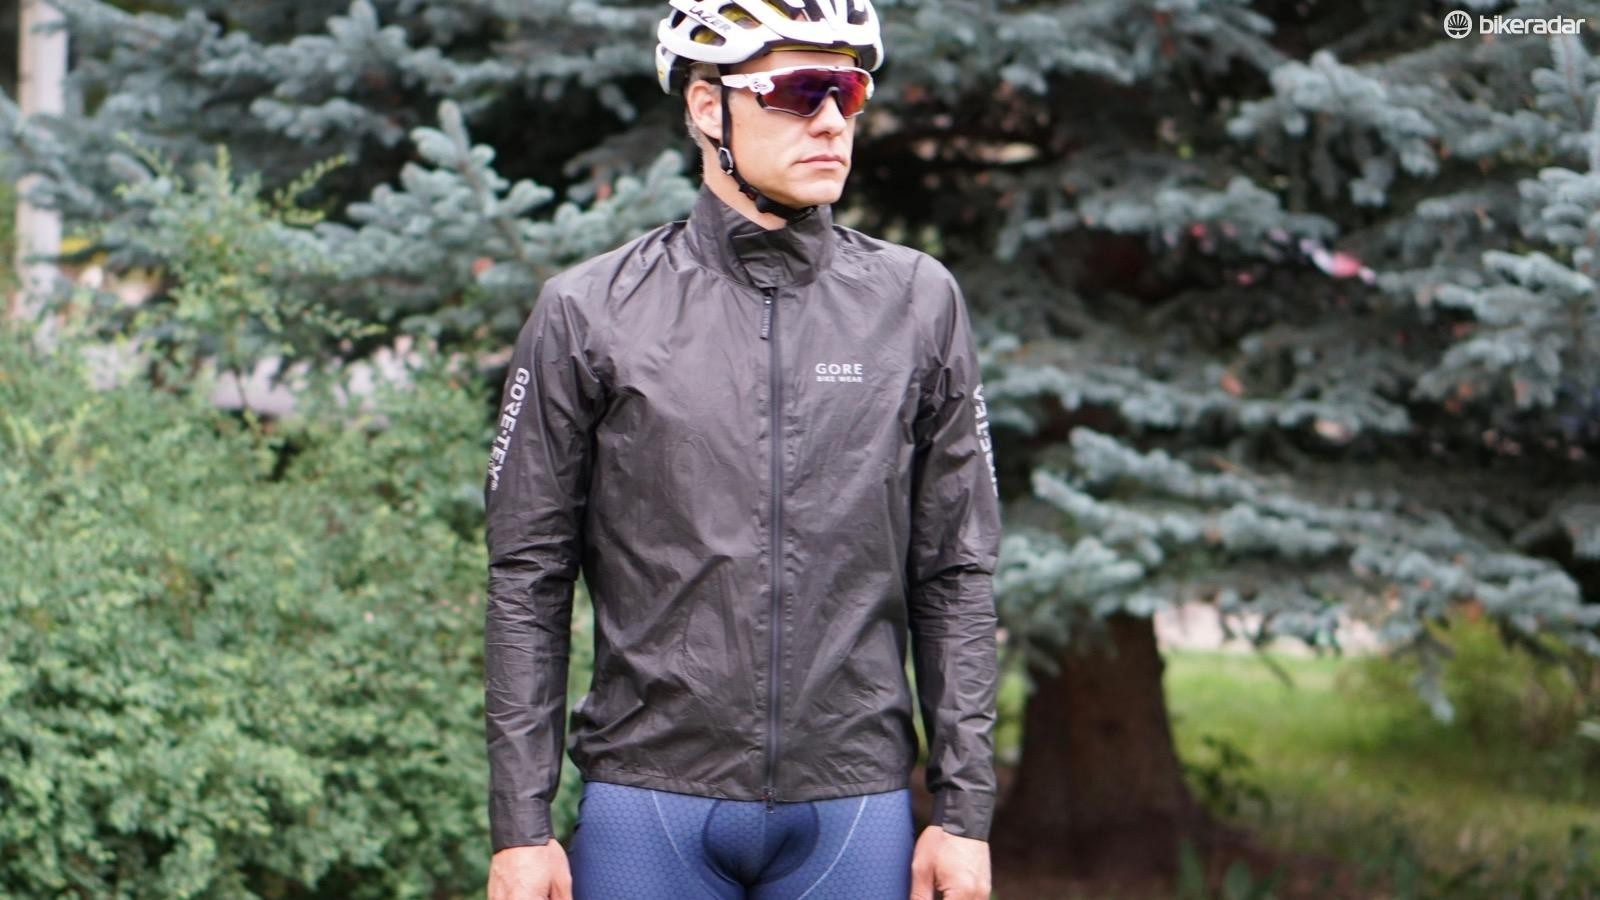 Gore Shakedry jackets are a high-end rain protection option